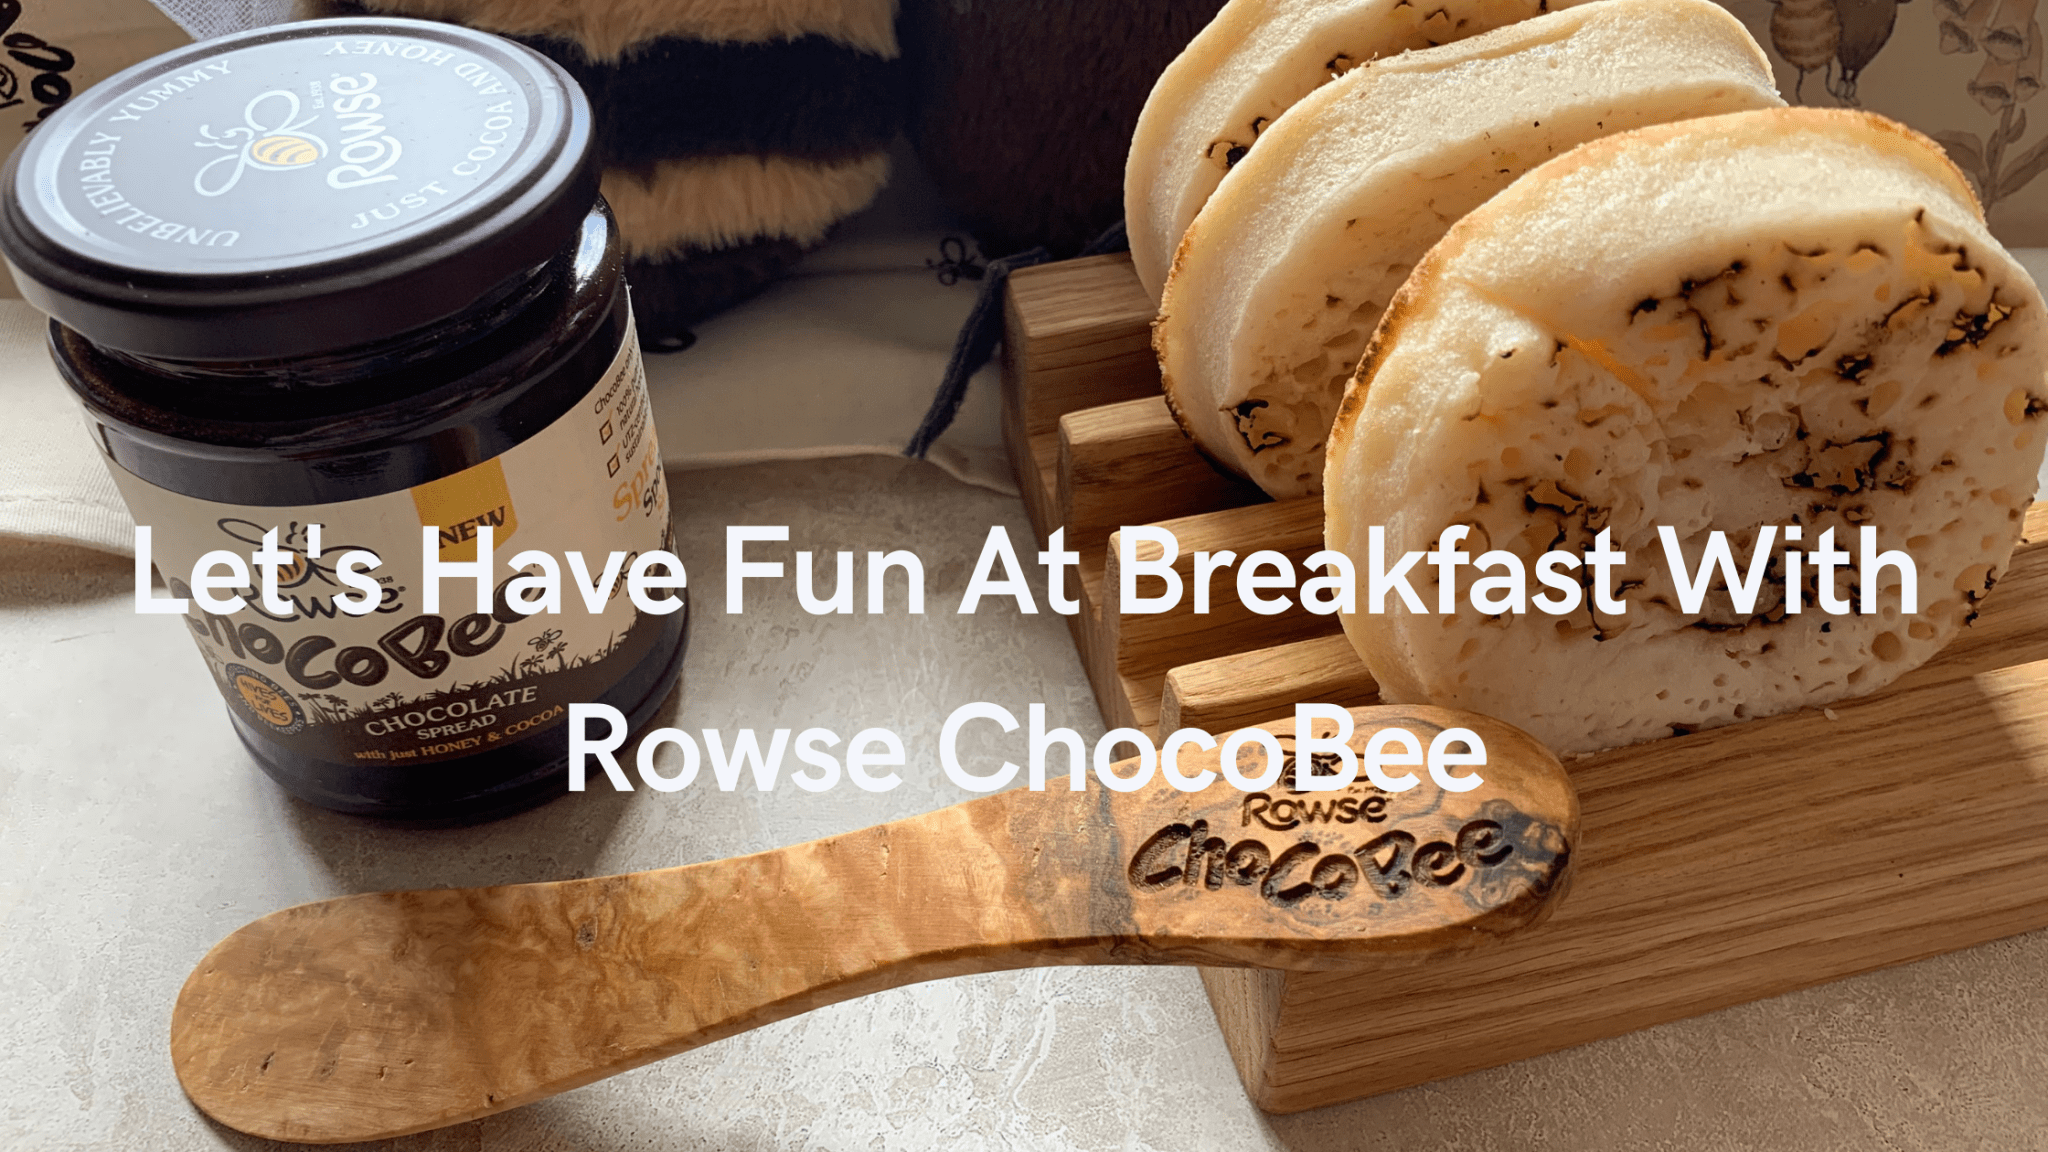 Let's Have Fun At Breakfast With Rowse ChocoBee